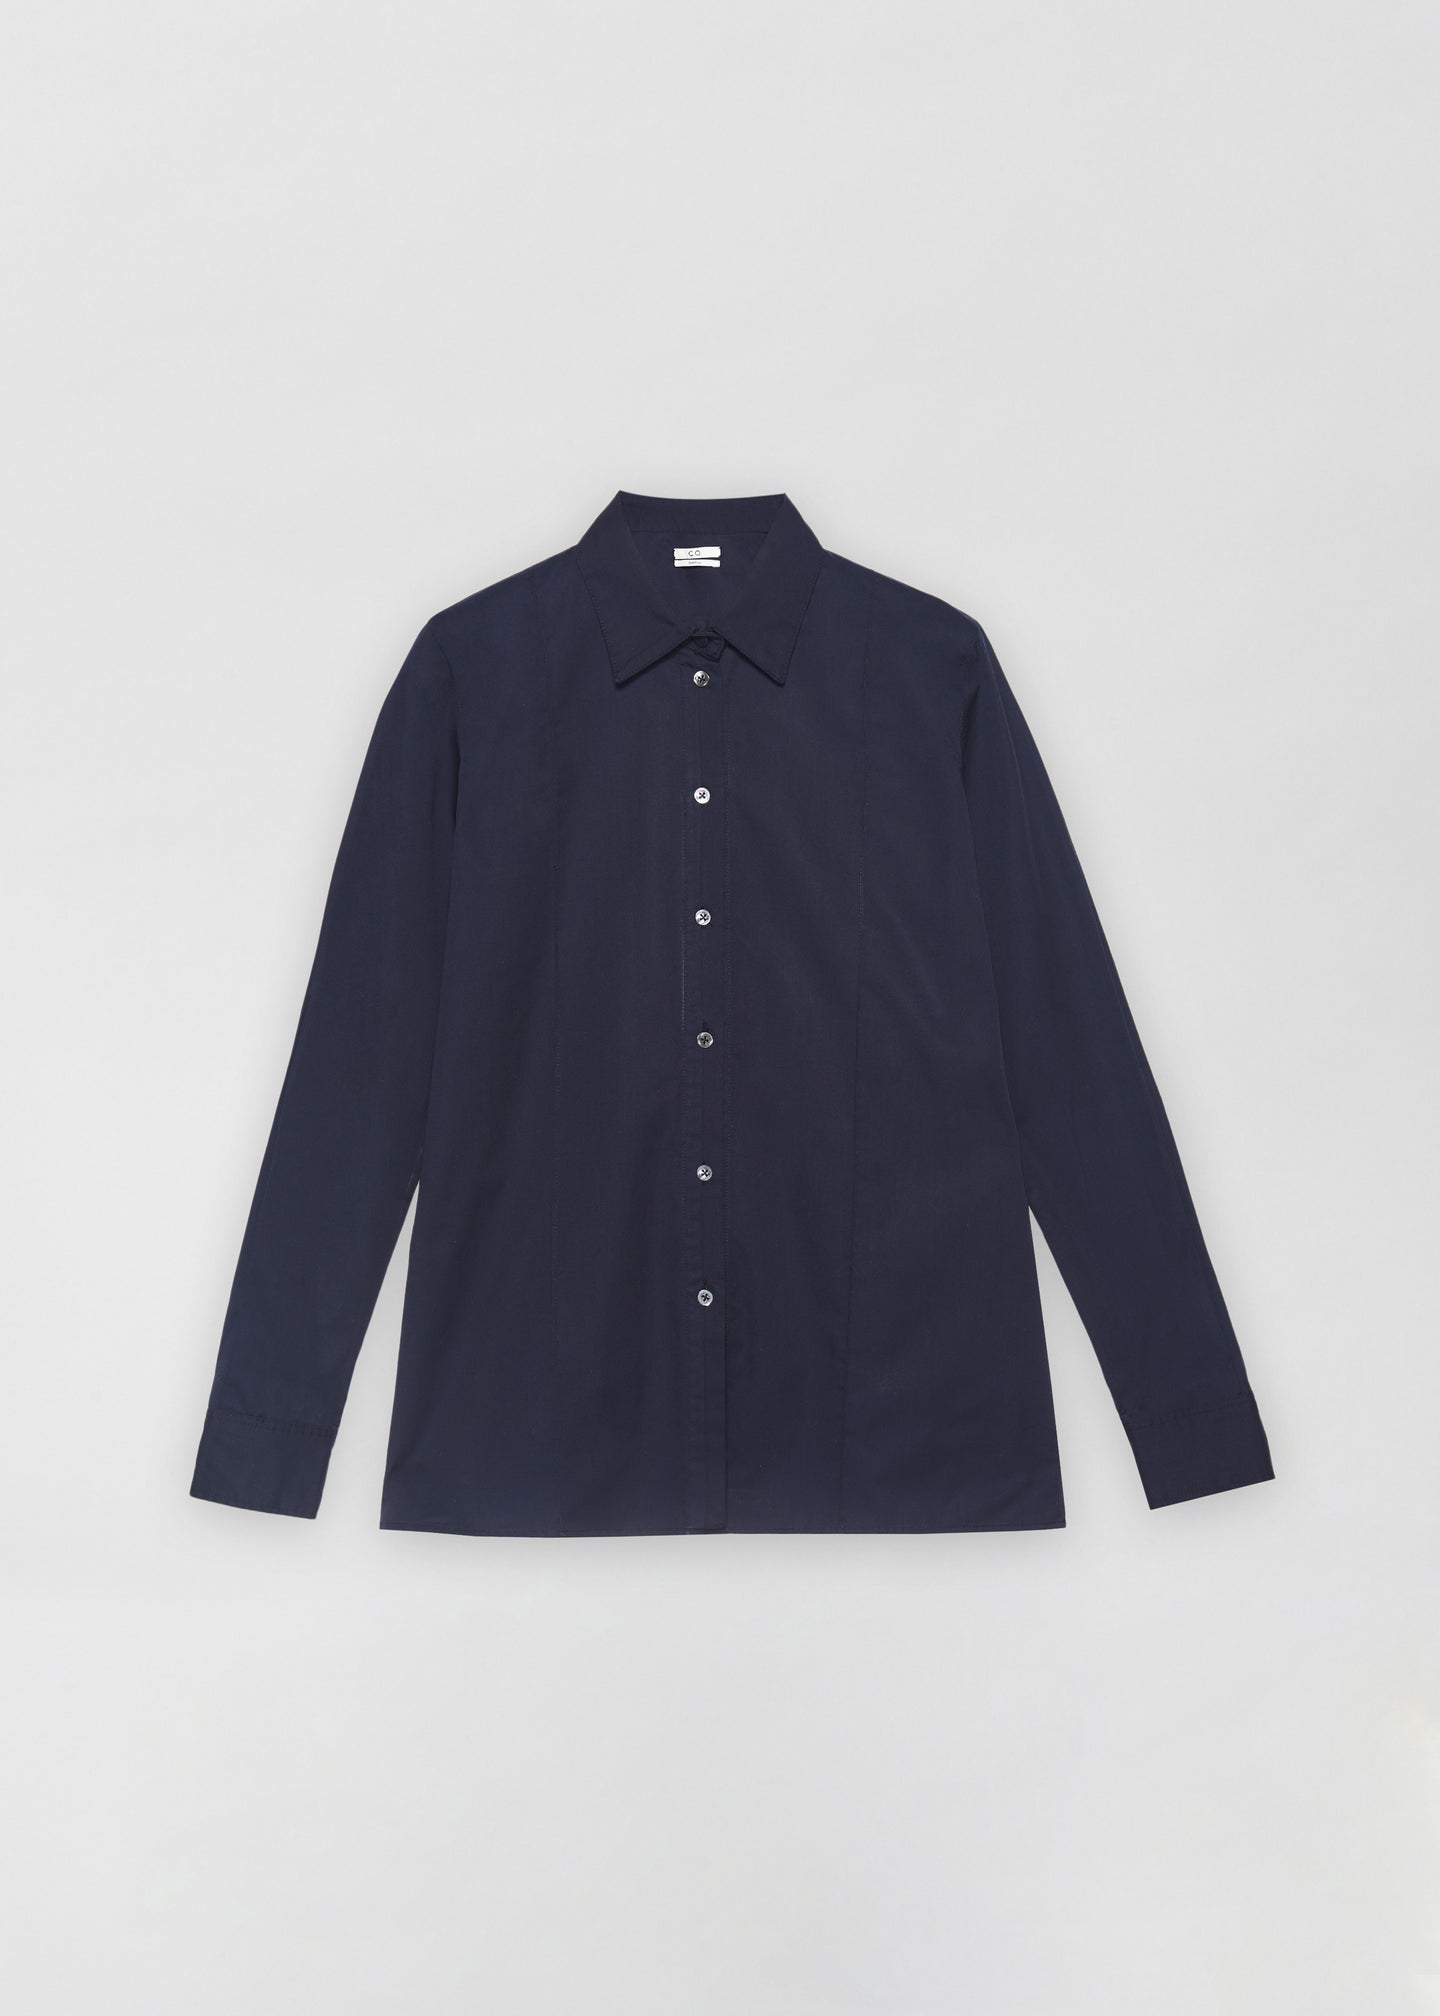 Tucked Placket Button Down Shirt - Navy - CO